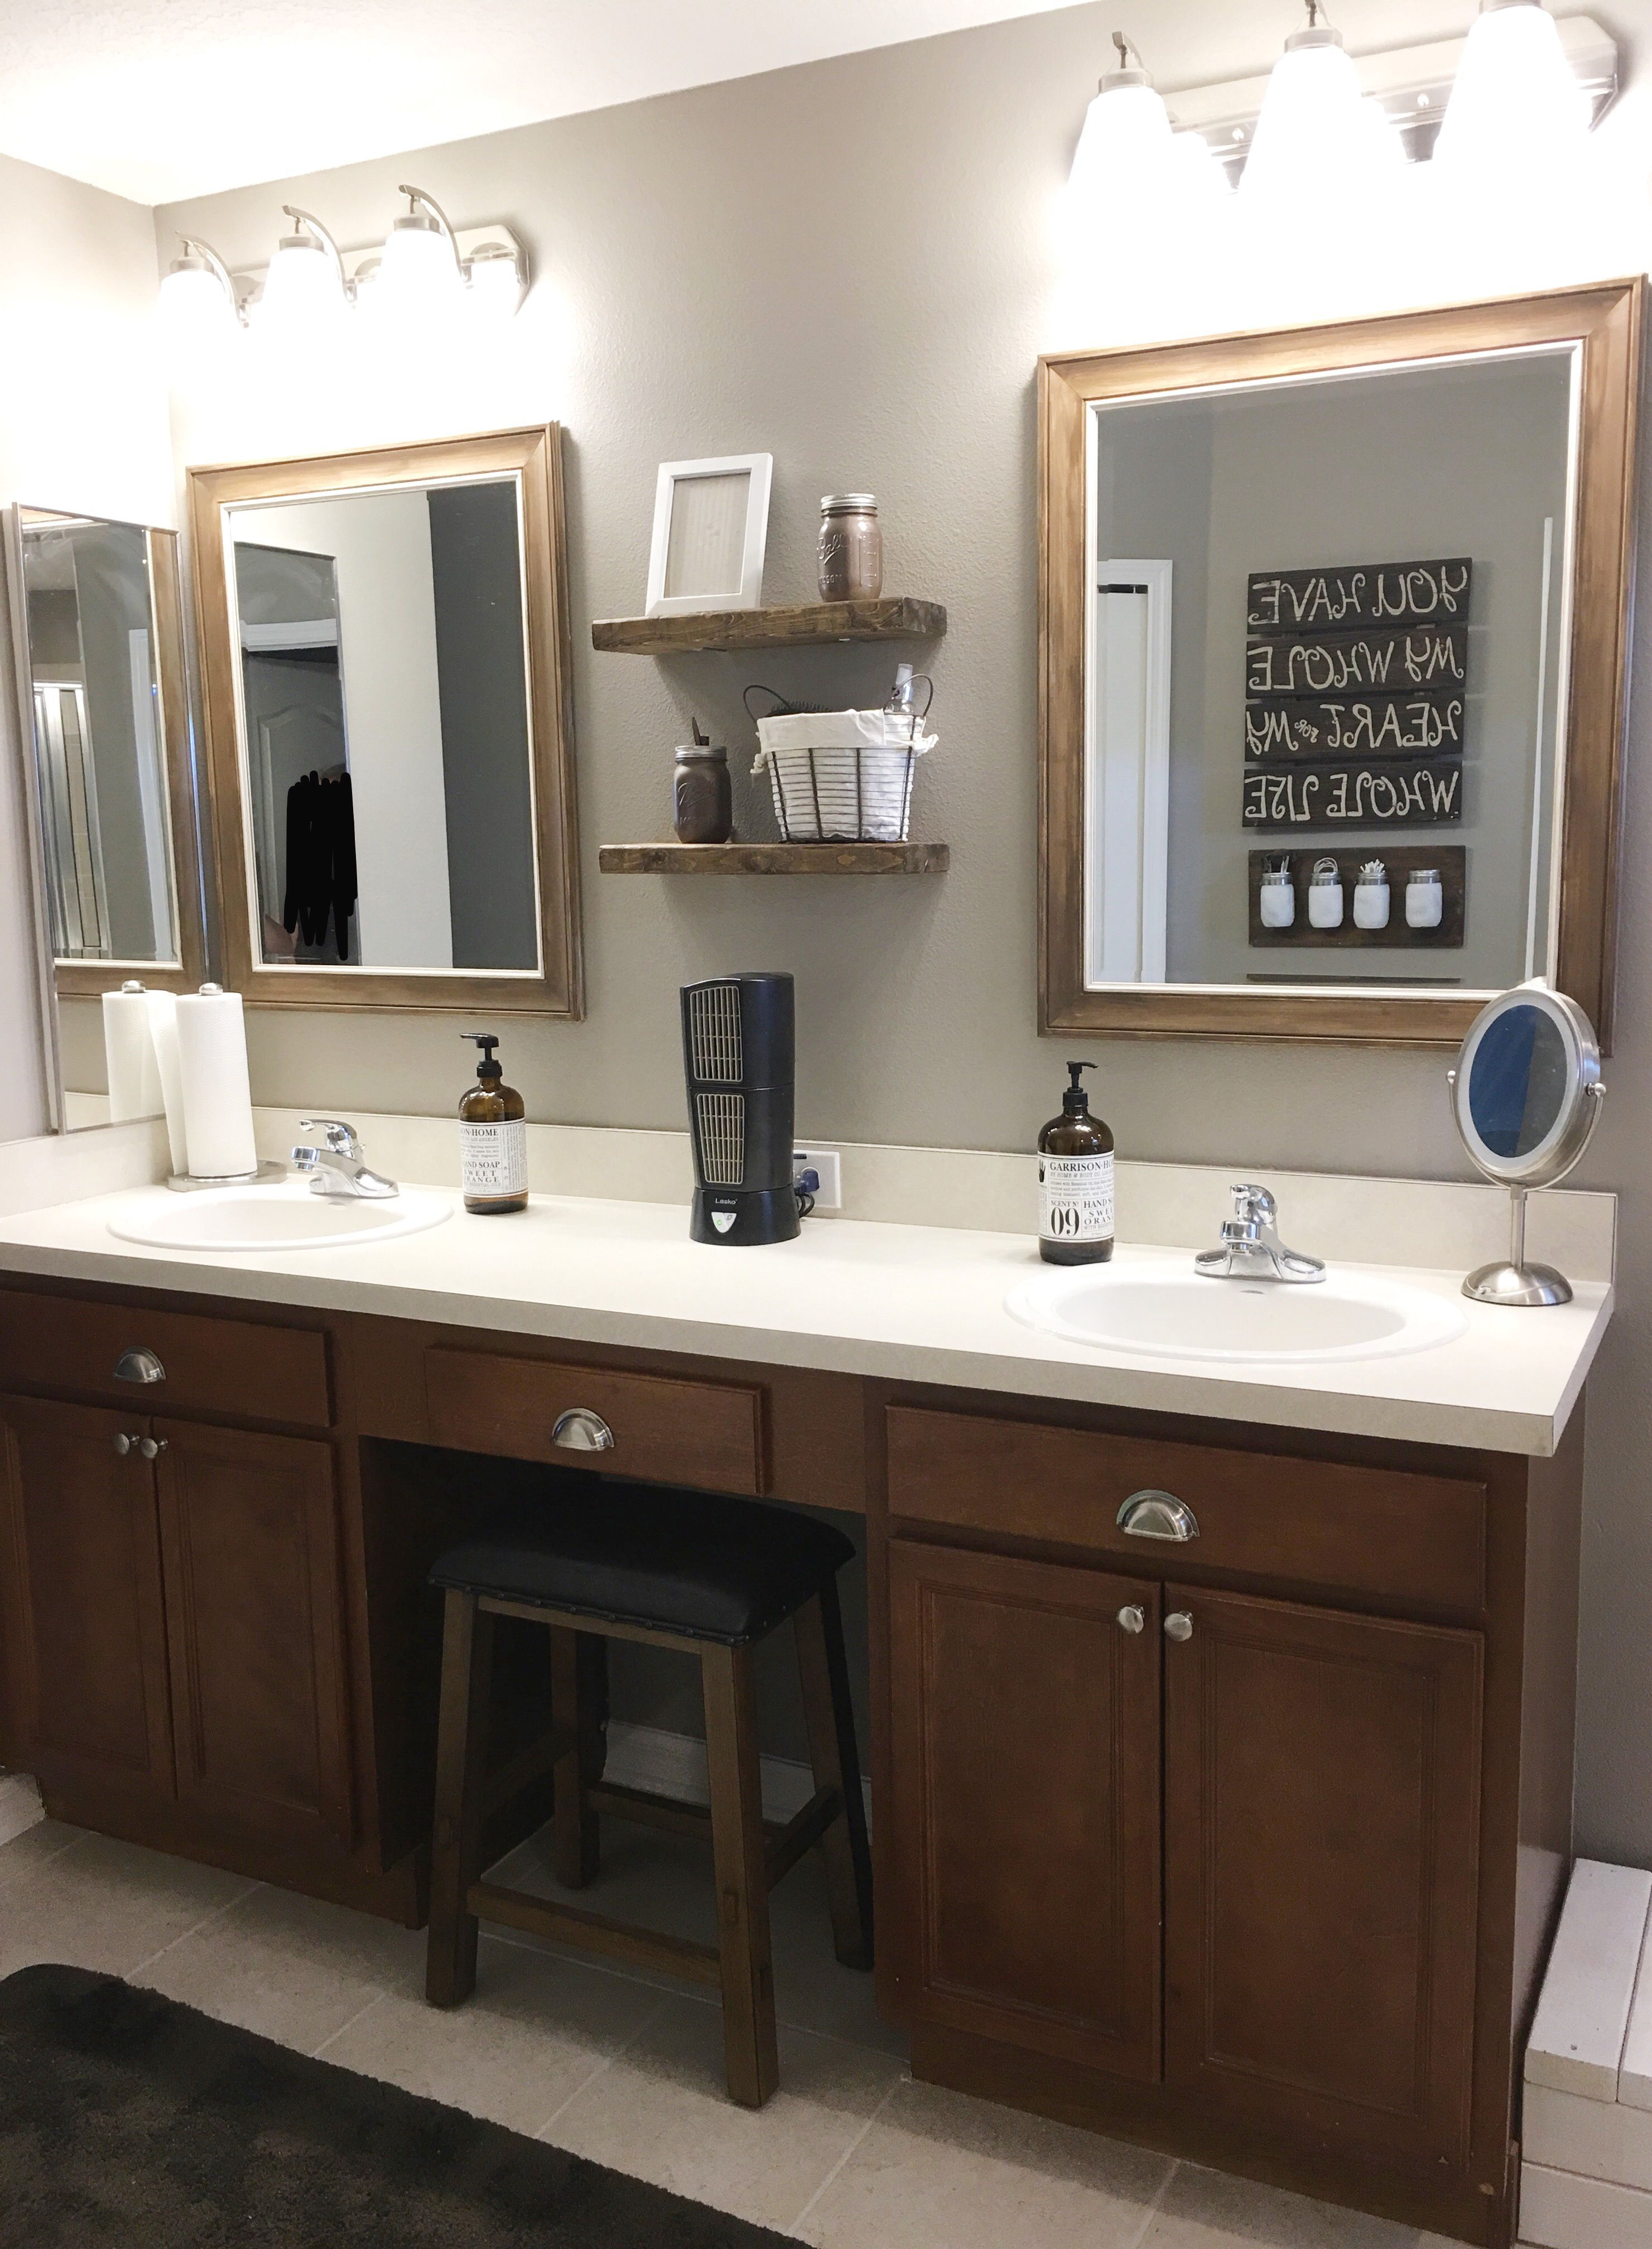 Master Bathroom Refresh Replaced Our Builder Grade Mirror With Two Hanging Mirrors That Bathroom Wall Decor Master Bathroom Refresh Bathroom Mirror With Shelf